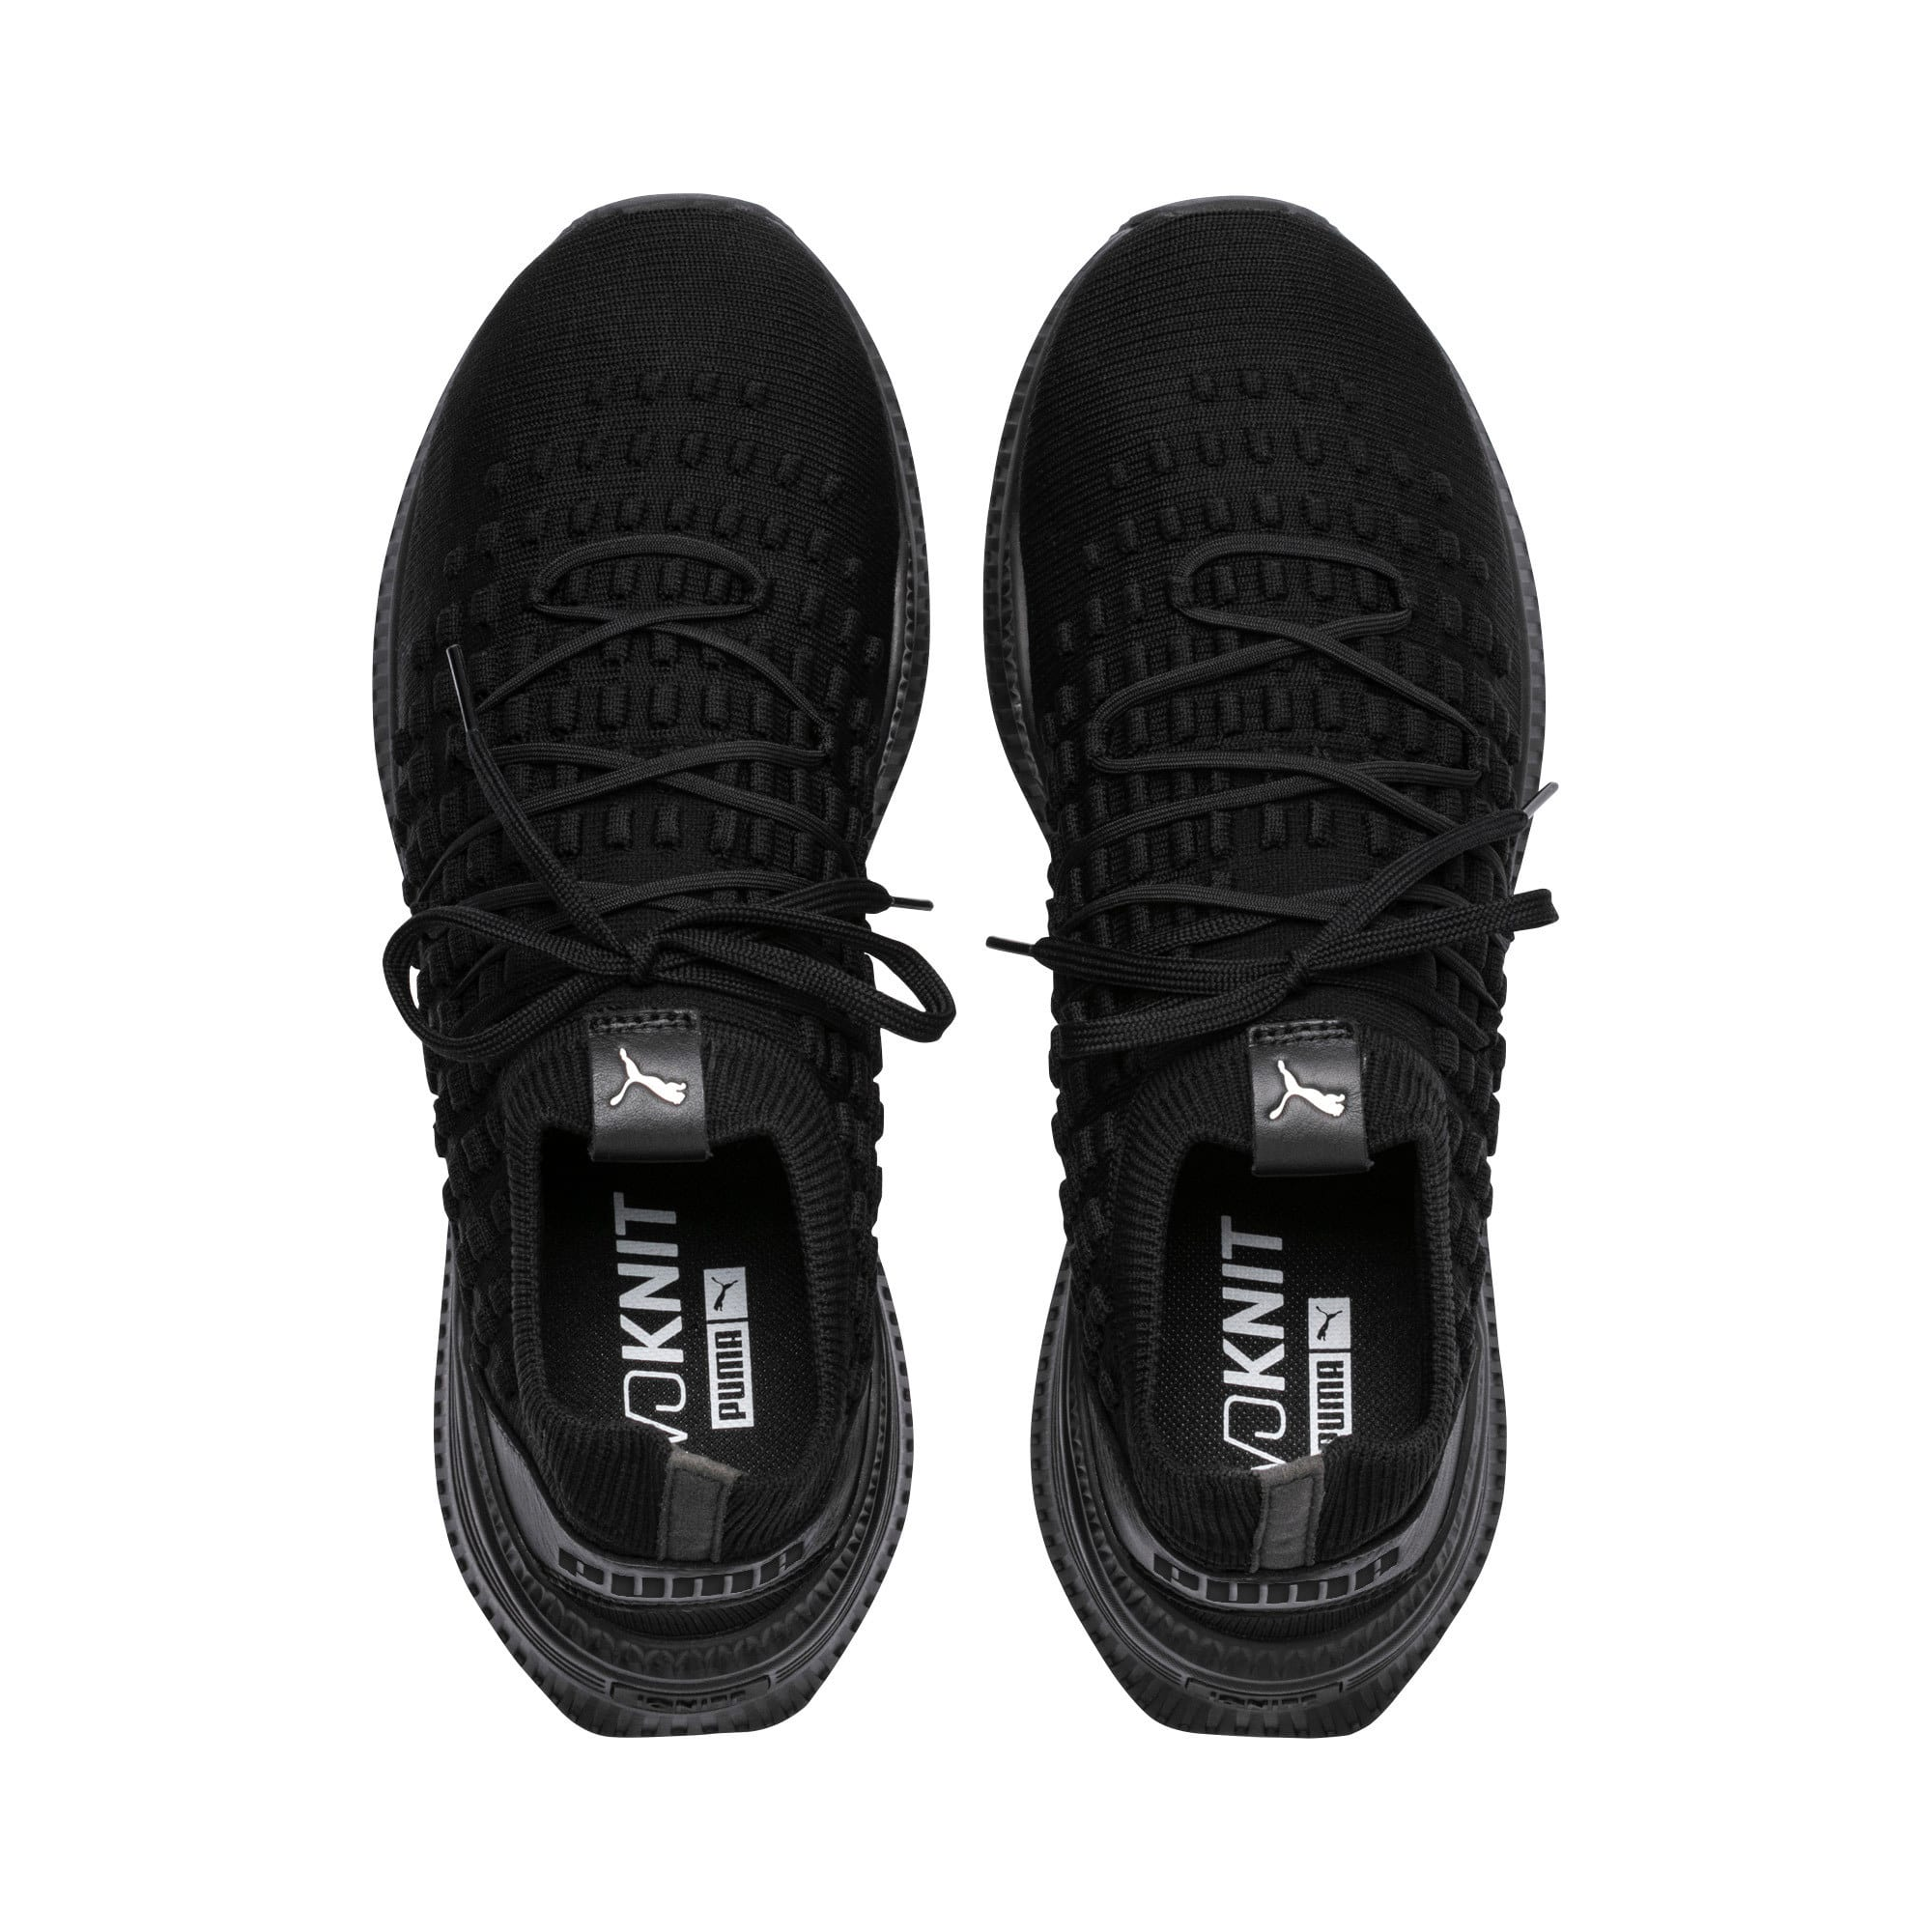 Thumbnail 6 of Evolution AVID FUSEFIT Sneakers, Puma Black-Puma Black-Black, medium